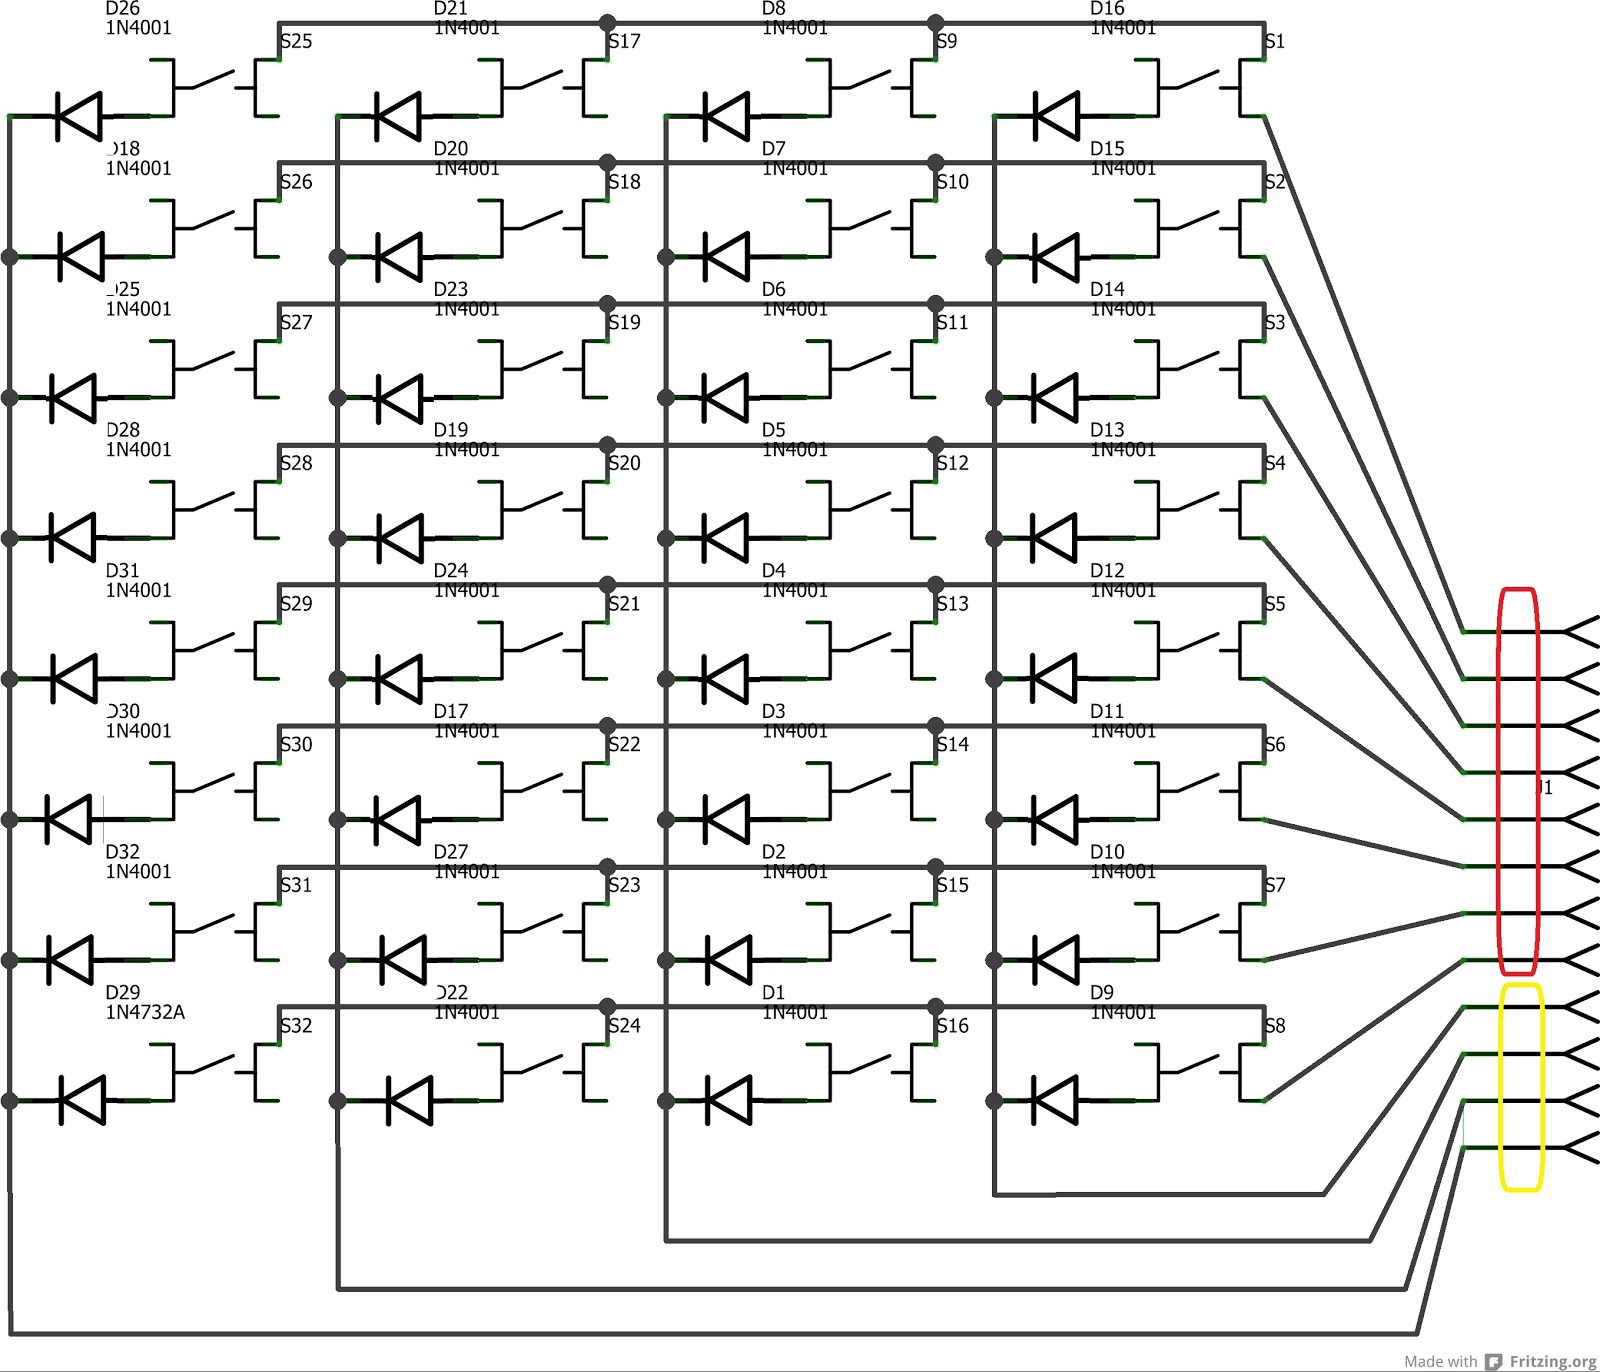 small resolution of keys pcb schematic columns red and rows yellow